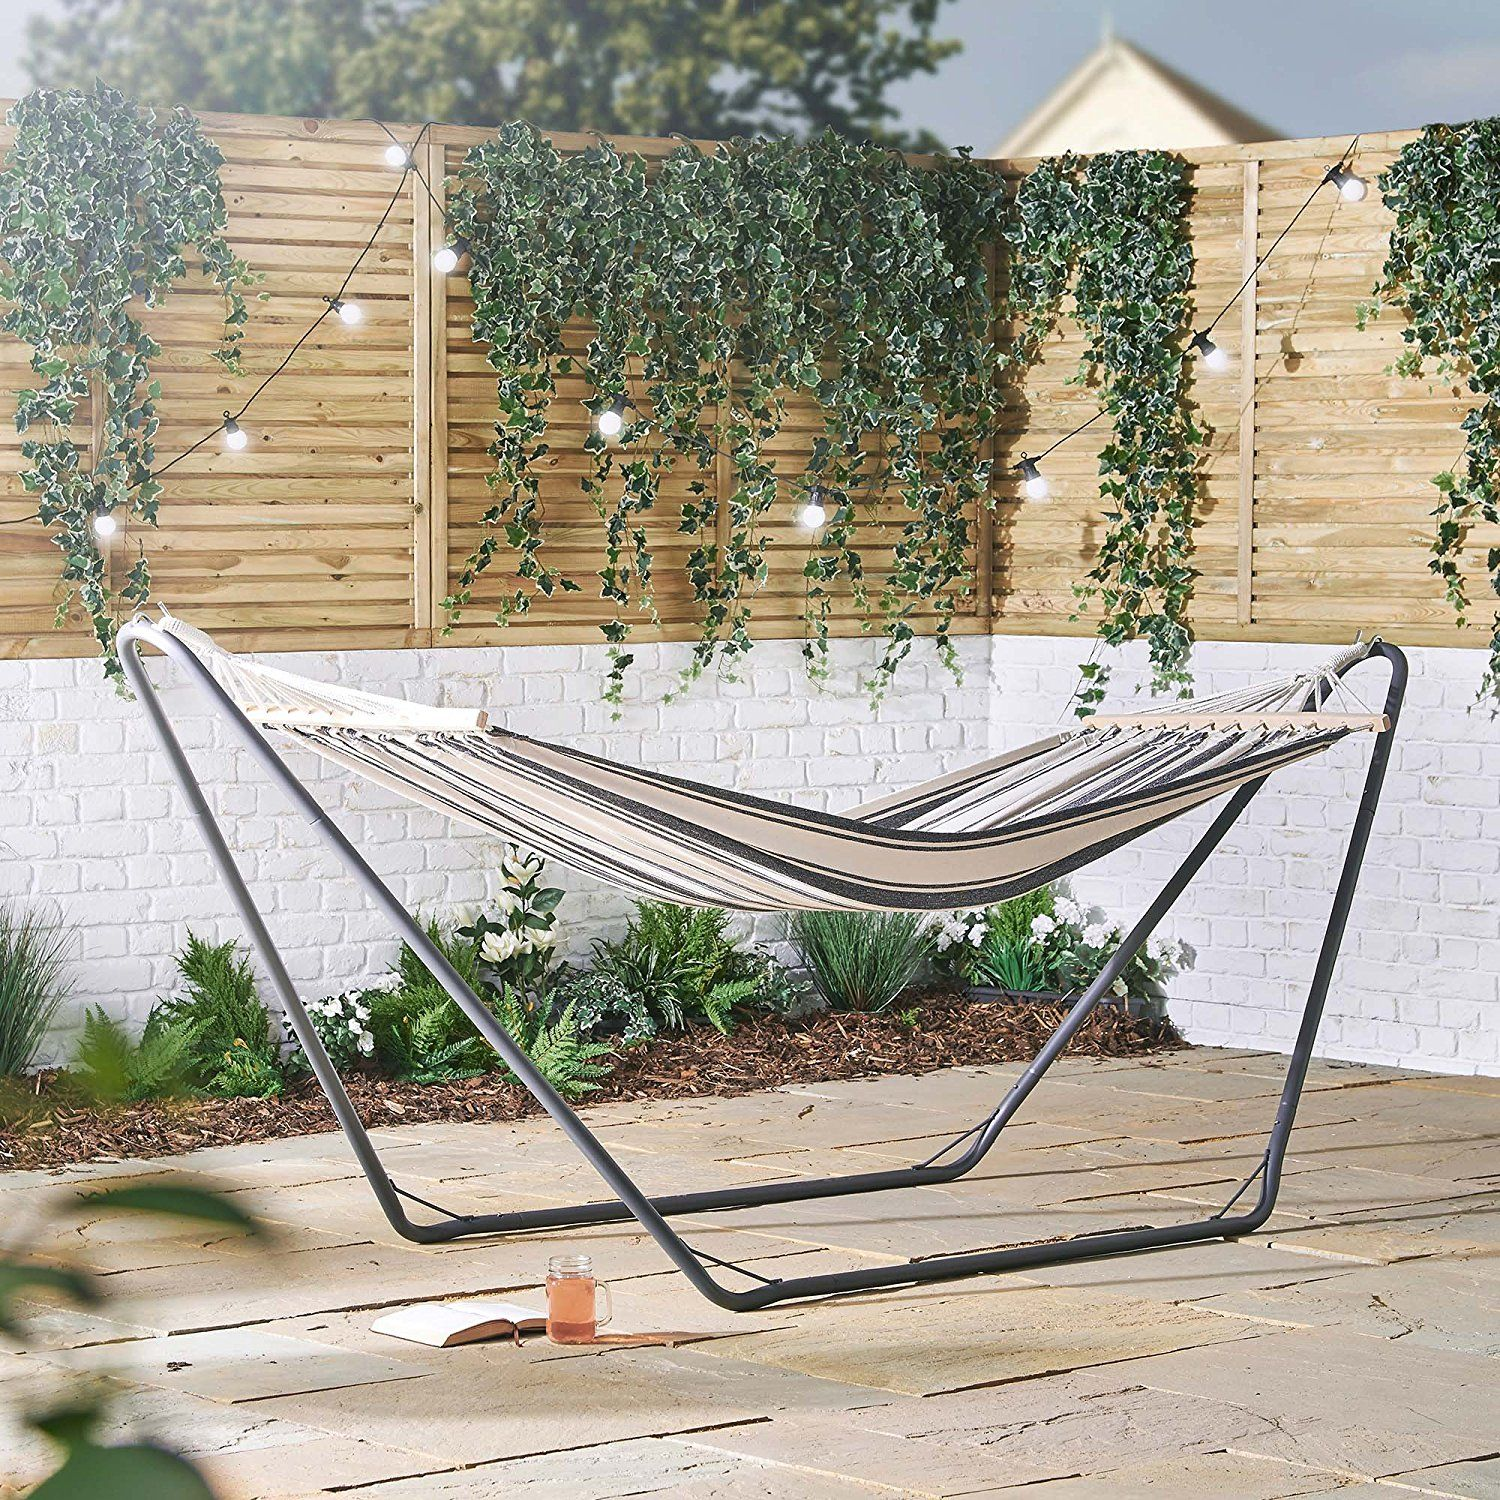 hammock diy homemade metal pvc plans portable double wooden drop in interior easy hammocks indoor round gorgeous stand frame designs camping with wood ground posts